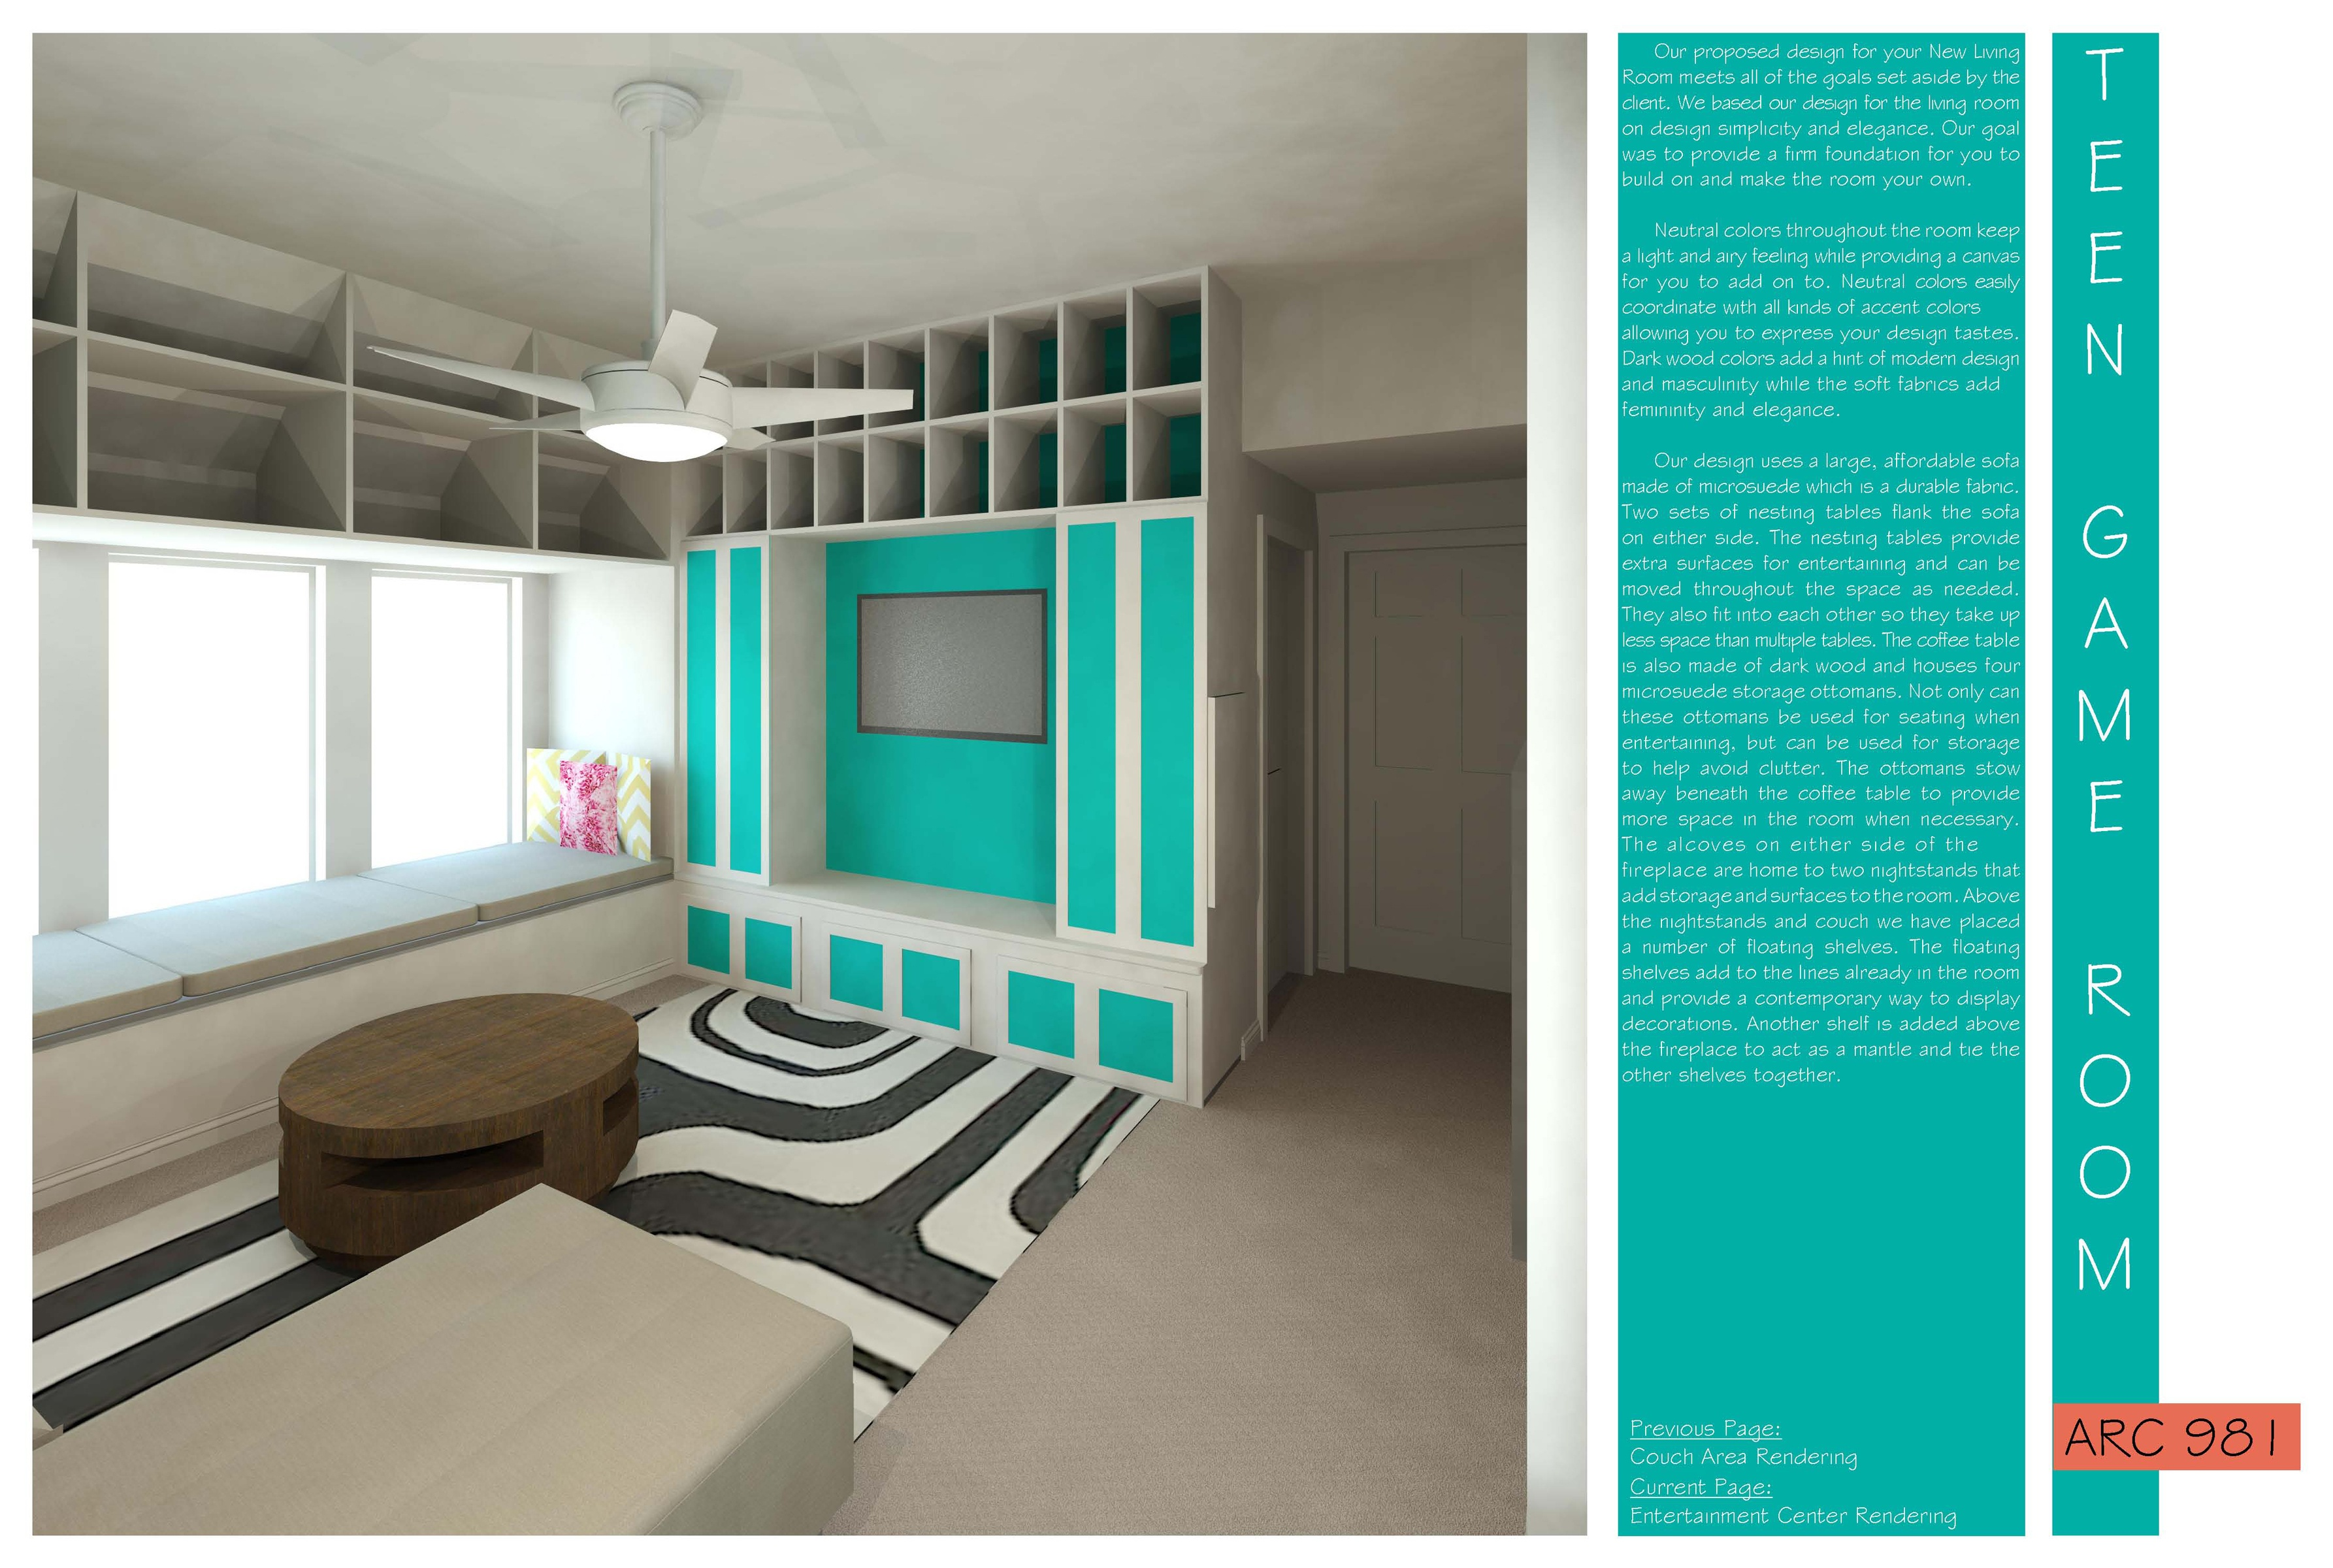 Home Interior Design Project designed by C + P Design - Toddler